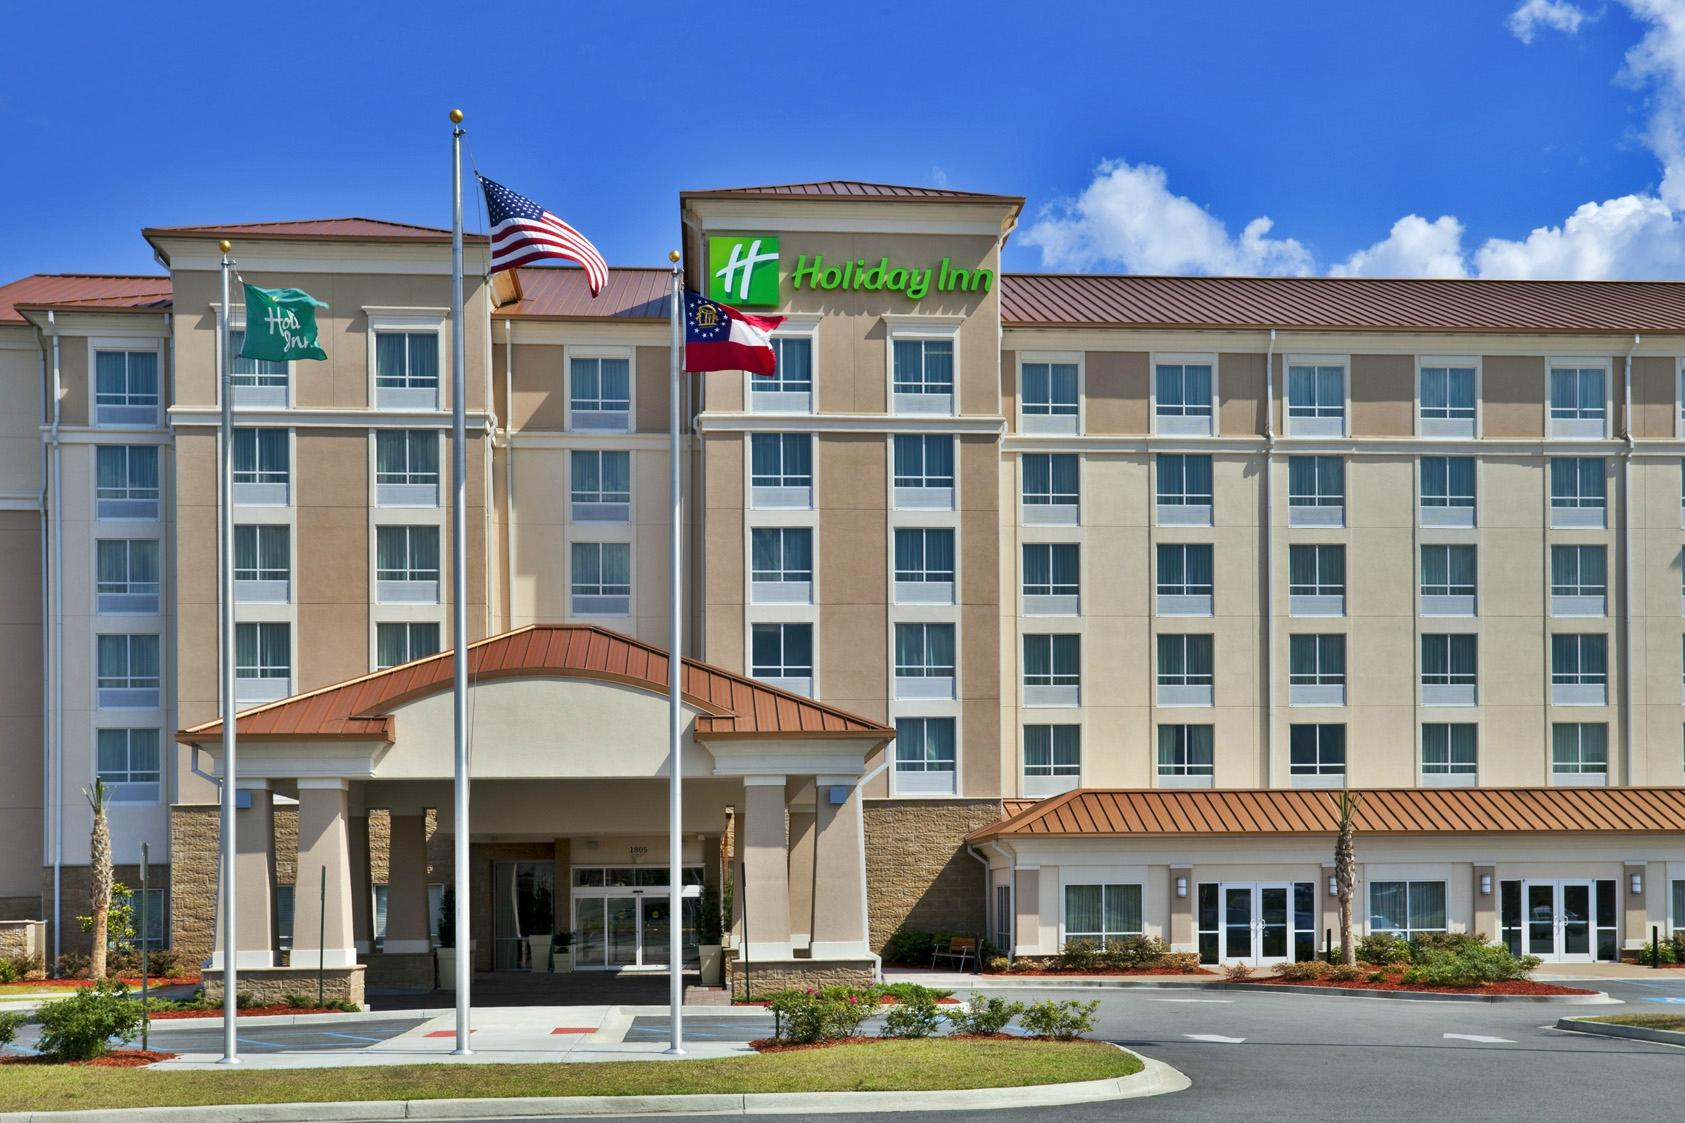 Holiday Inn Hotel &